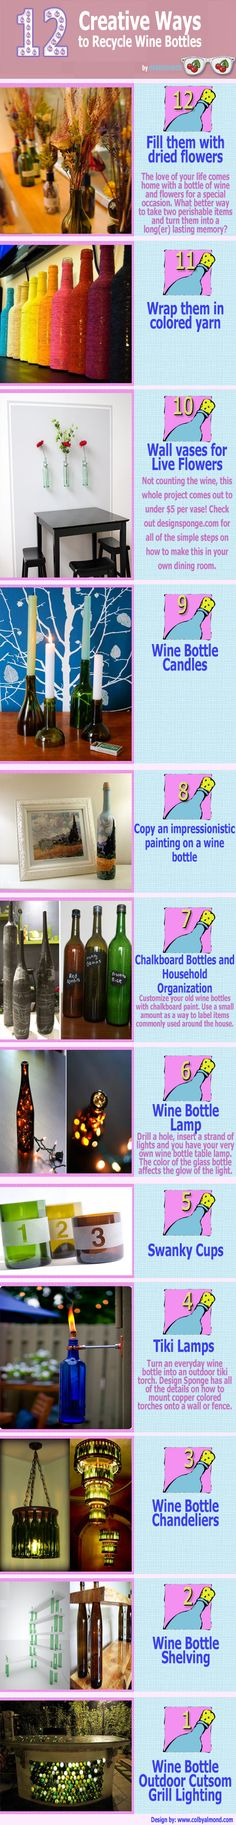 Recycling wine bottles.